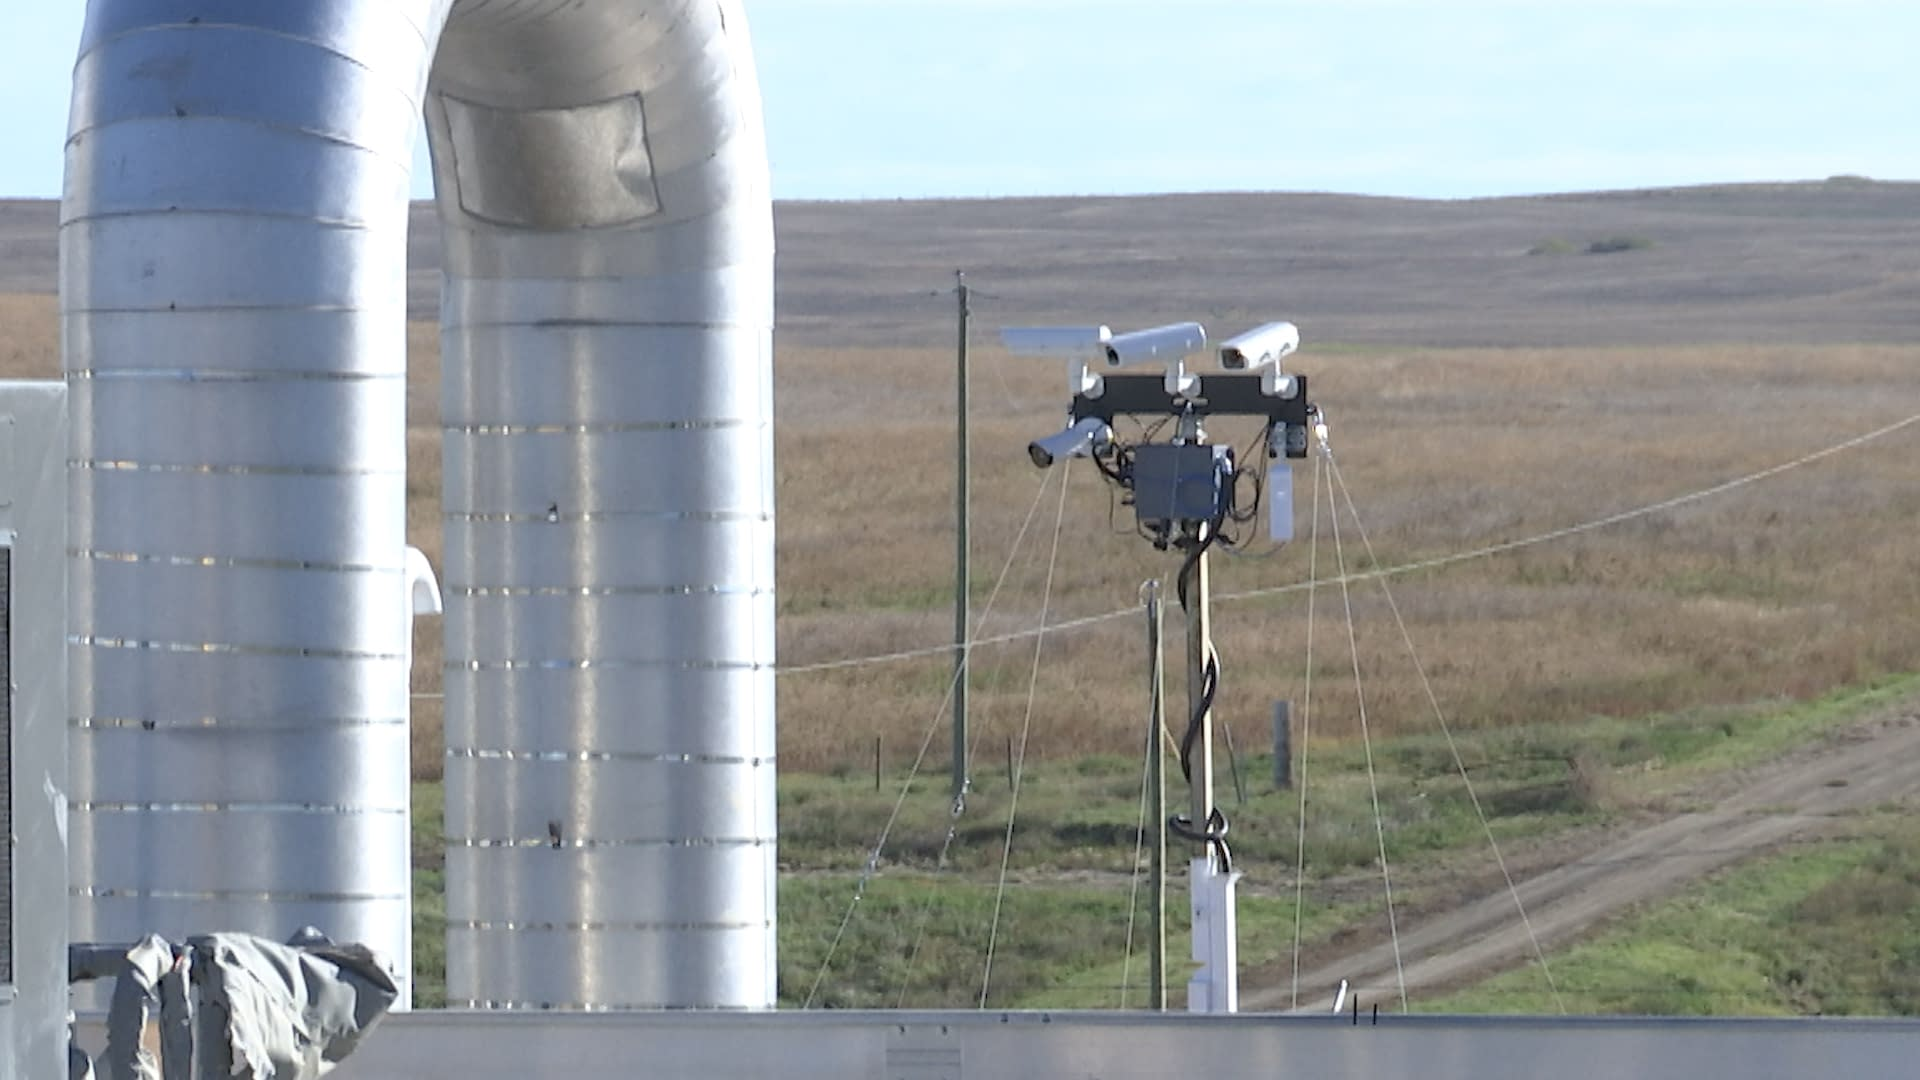 IntelliView leak and security analytic camera system watching over a TransCanada Keystone Pipeline pump station.